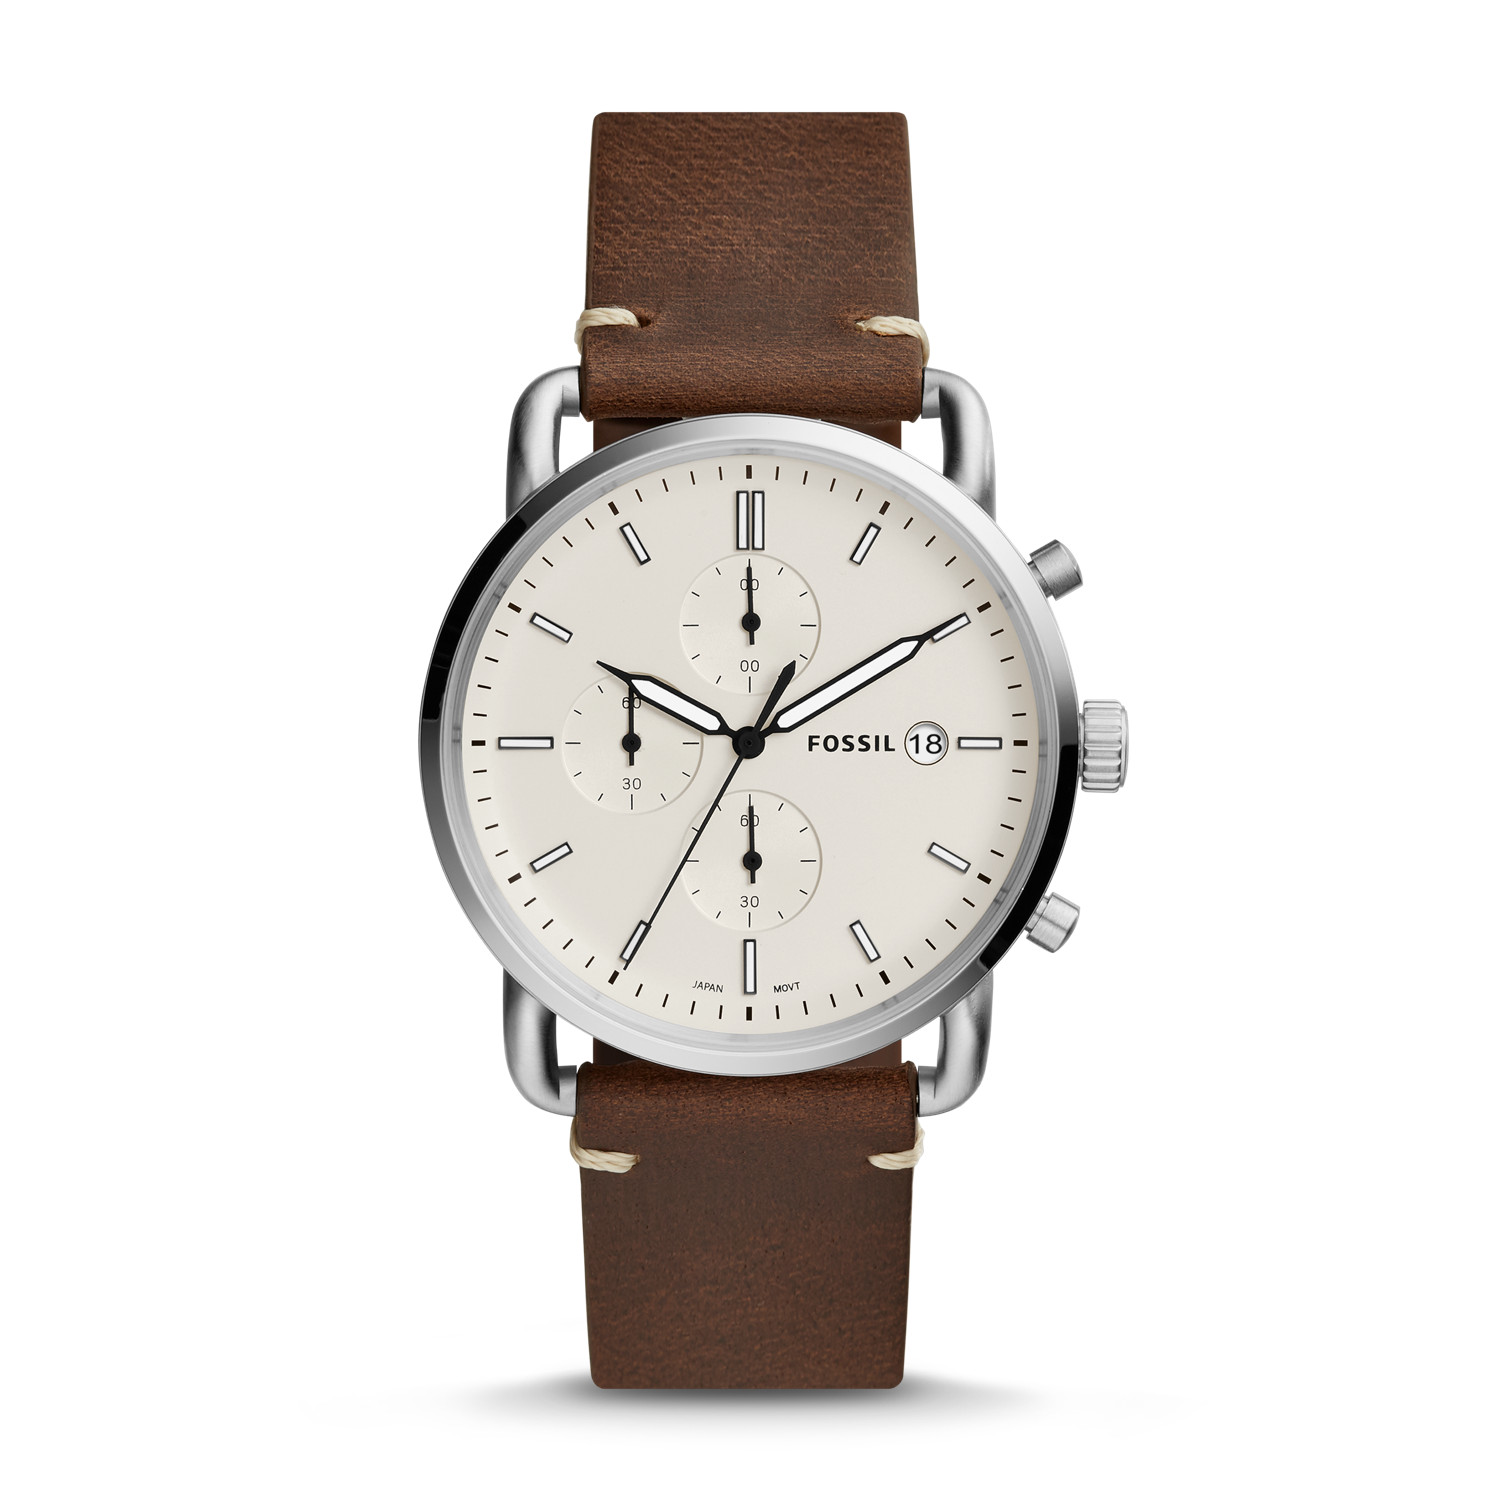 e2b69b9c5 The Commuter Chronograph Brown Leather Watch - Fossil